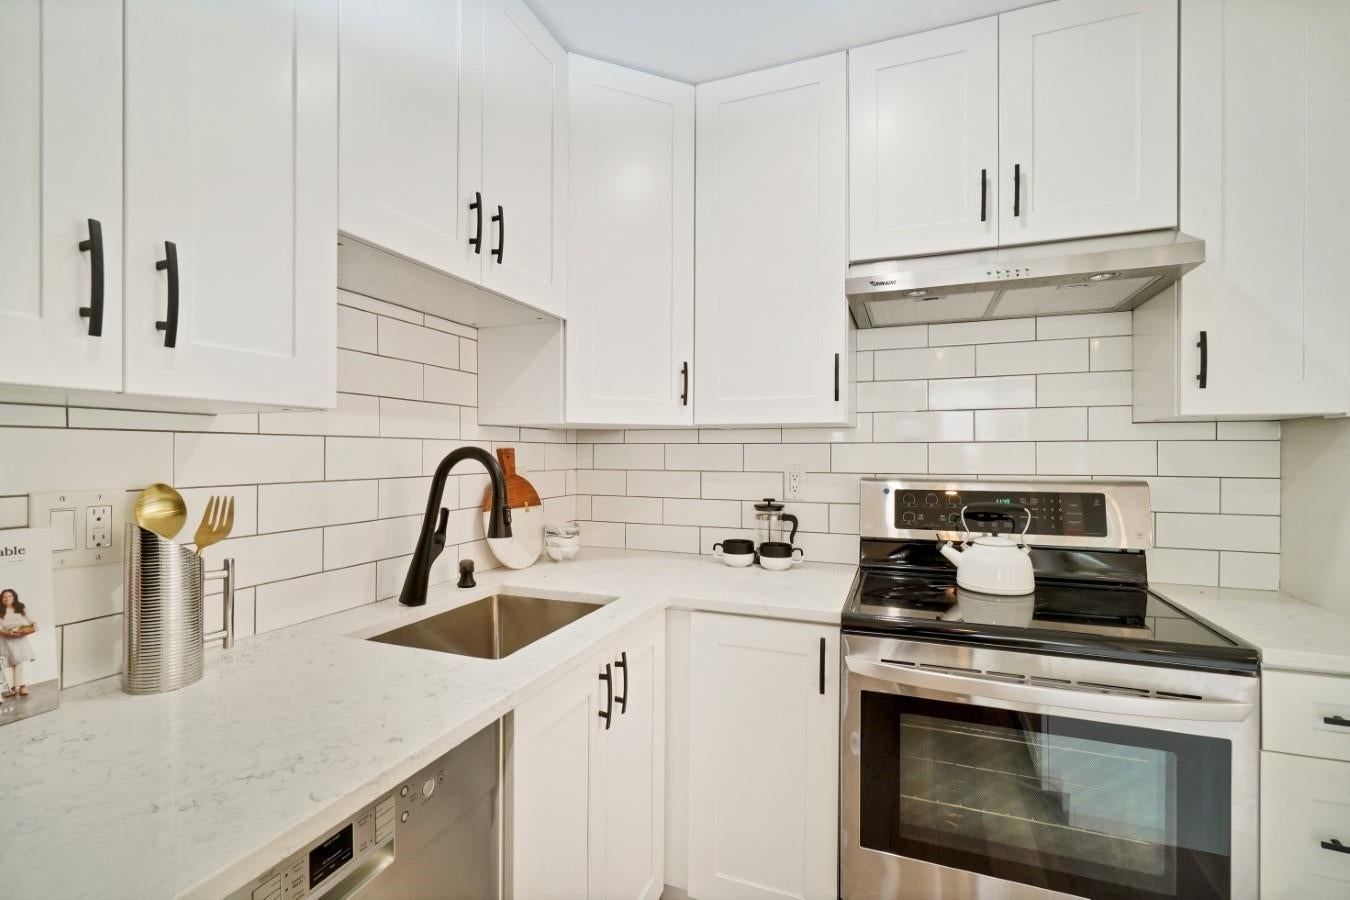 206 330 W 2ND STREET - Lower Lonsdale Apartment/Condo for sale, 2 Bedrooms (R2604160) - #2